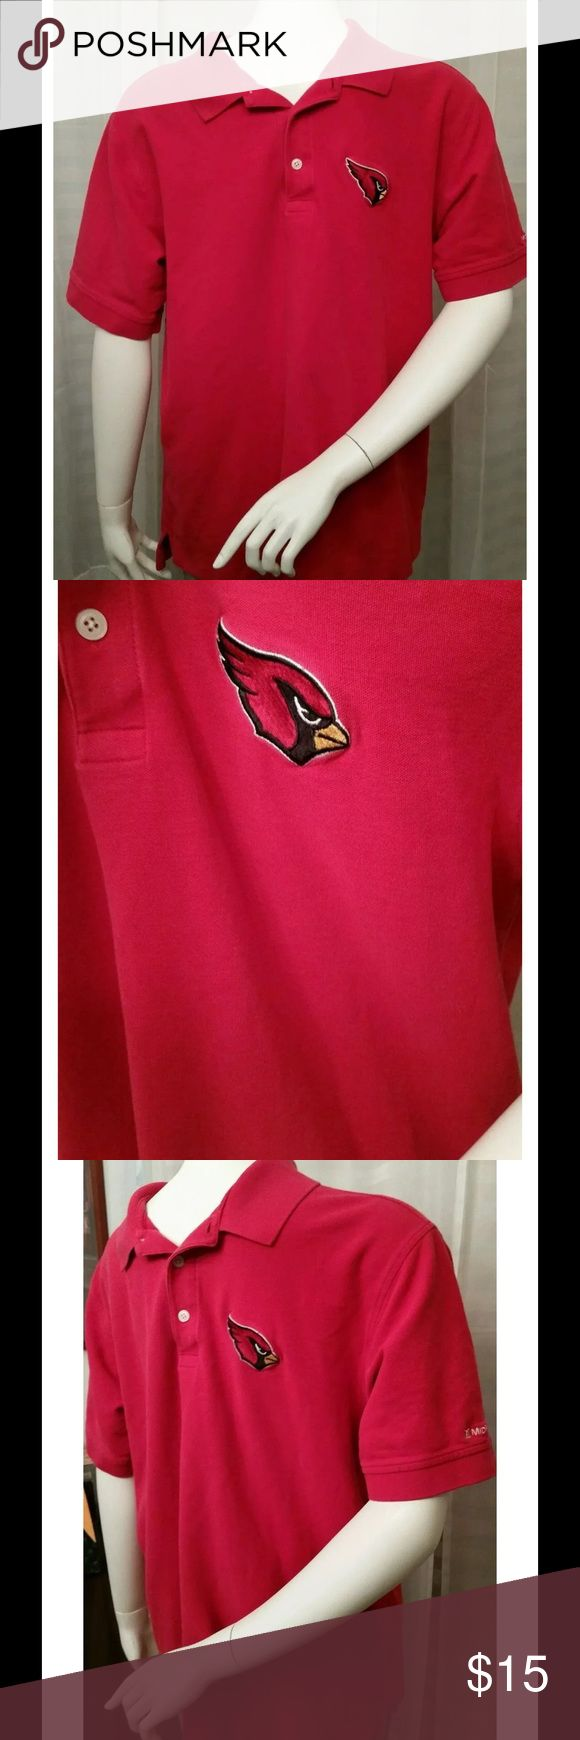 Devin & jones Az cardinals polo shirt sz: M for sale is a men's, Devon and Jones brand, short sleeve, NFL, red, Arizona Cardinals polo shirt, size medium   Shirt is in good condition with no rips or stains, on the left sleeve it says MidFirst Bank   From under one arm to under the other measures approximately 21 inches.   From the top of the shoulder to the bottom of the shirt, measures approximately 27 inches devon & jones Shirts Polos